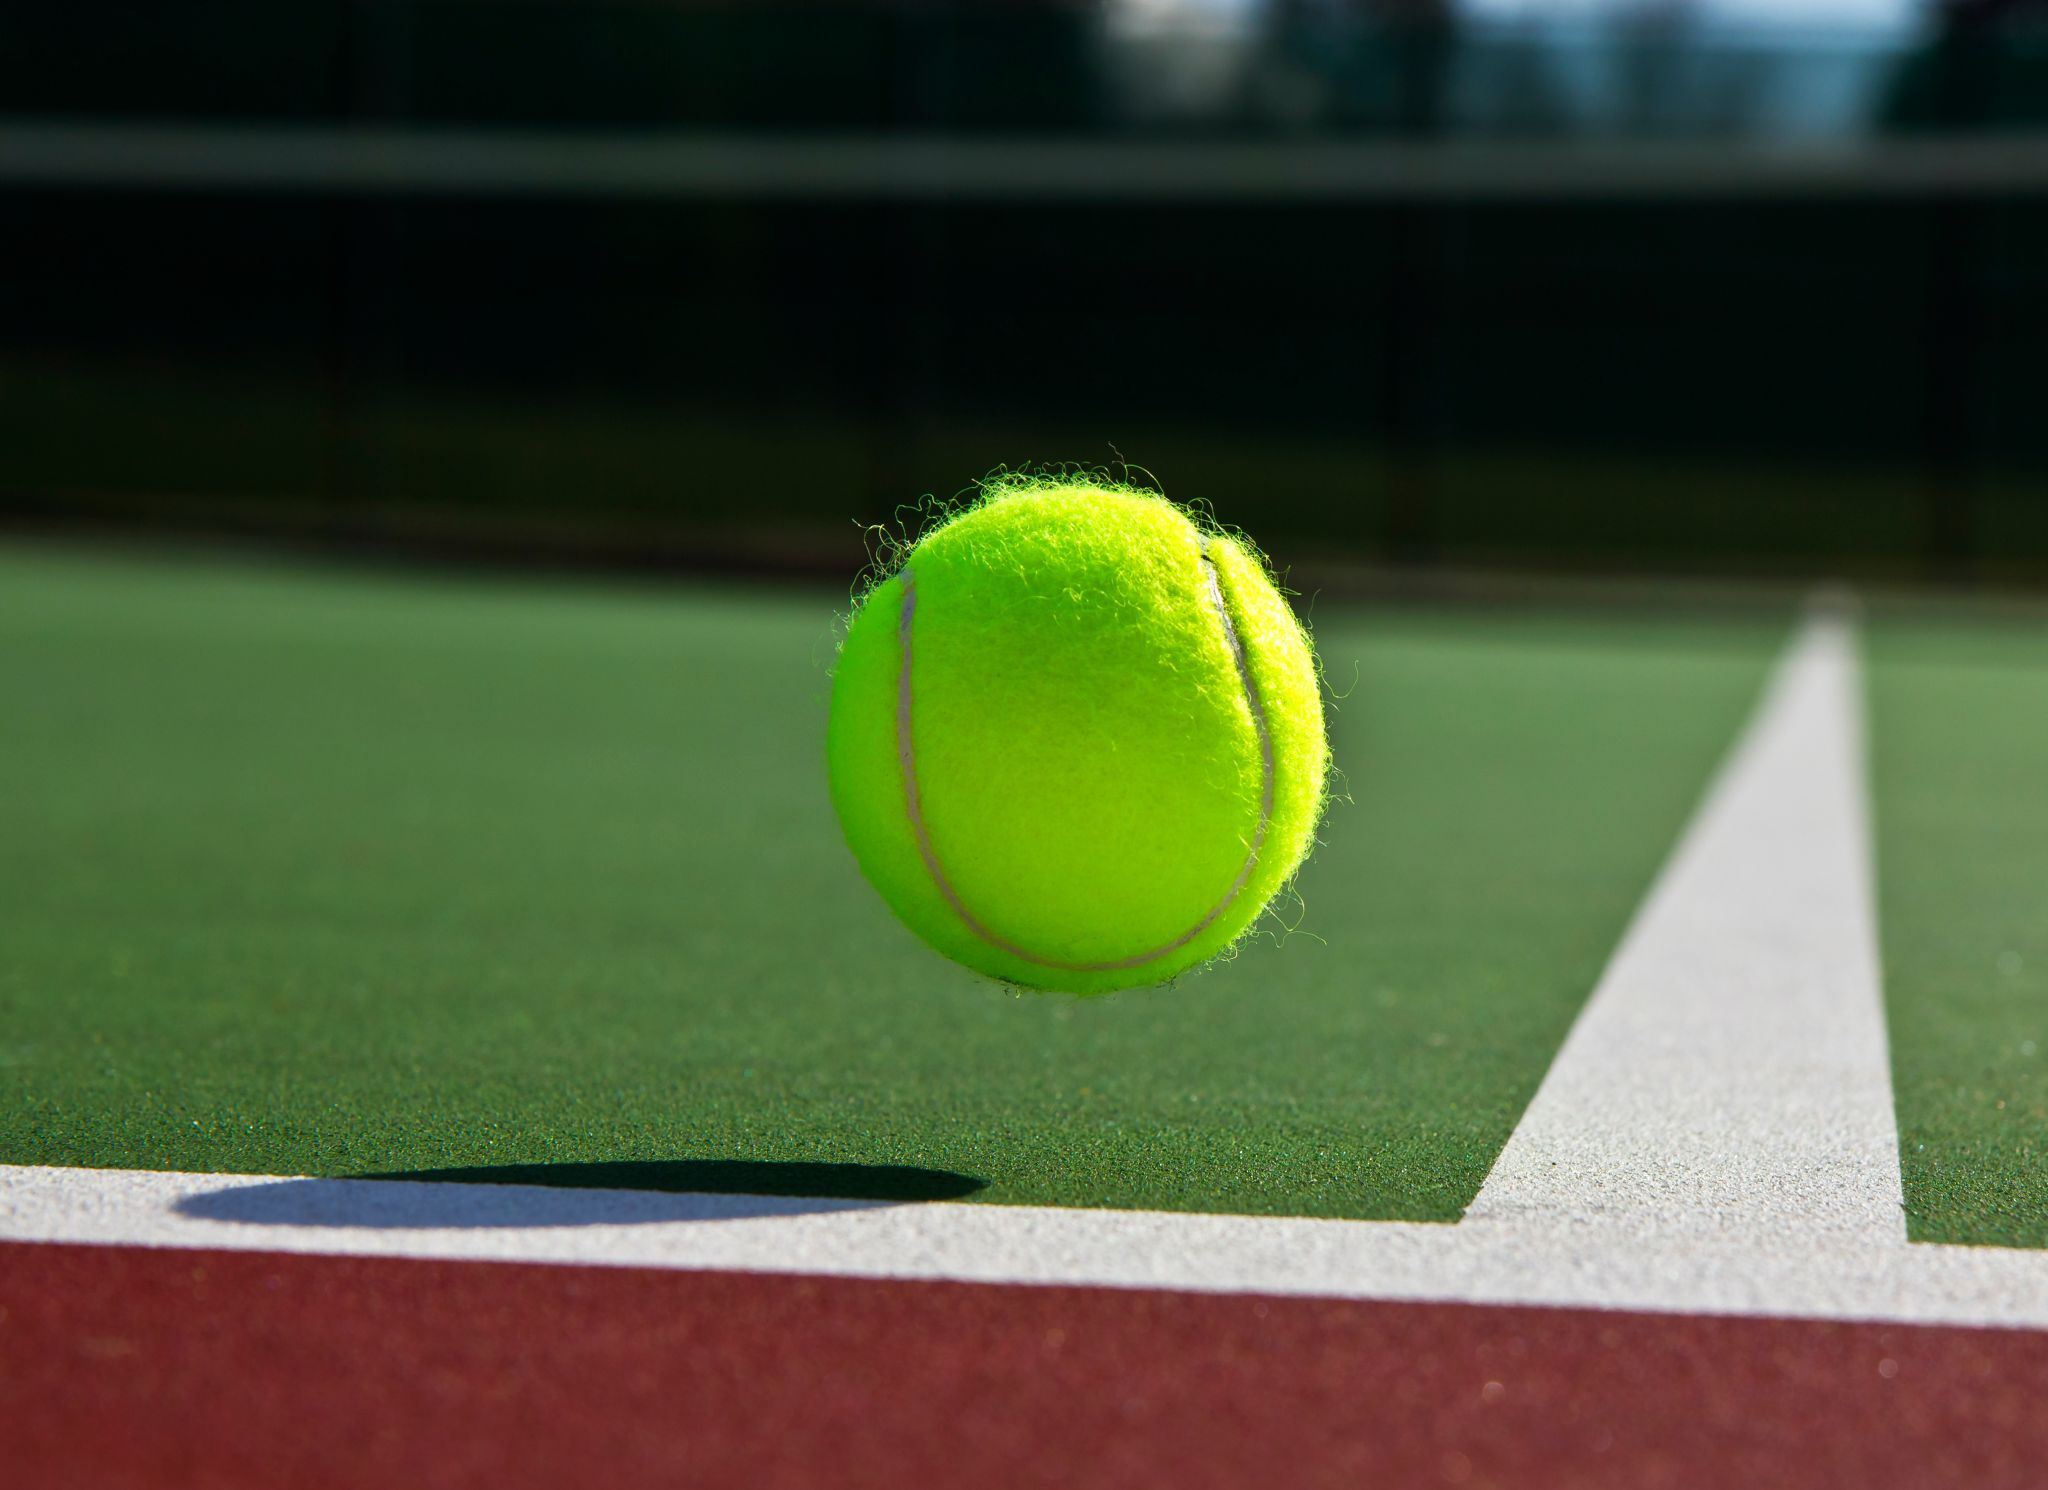 Spitting incident gets Texas A&M tennis player Patrick Kypson disciplined